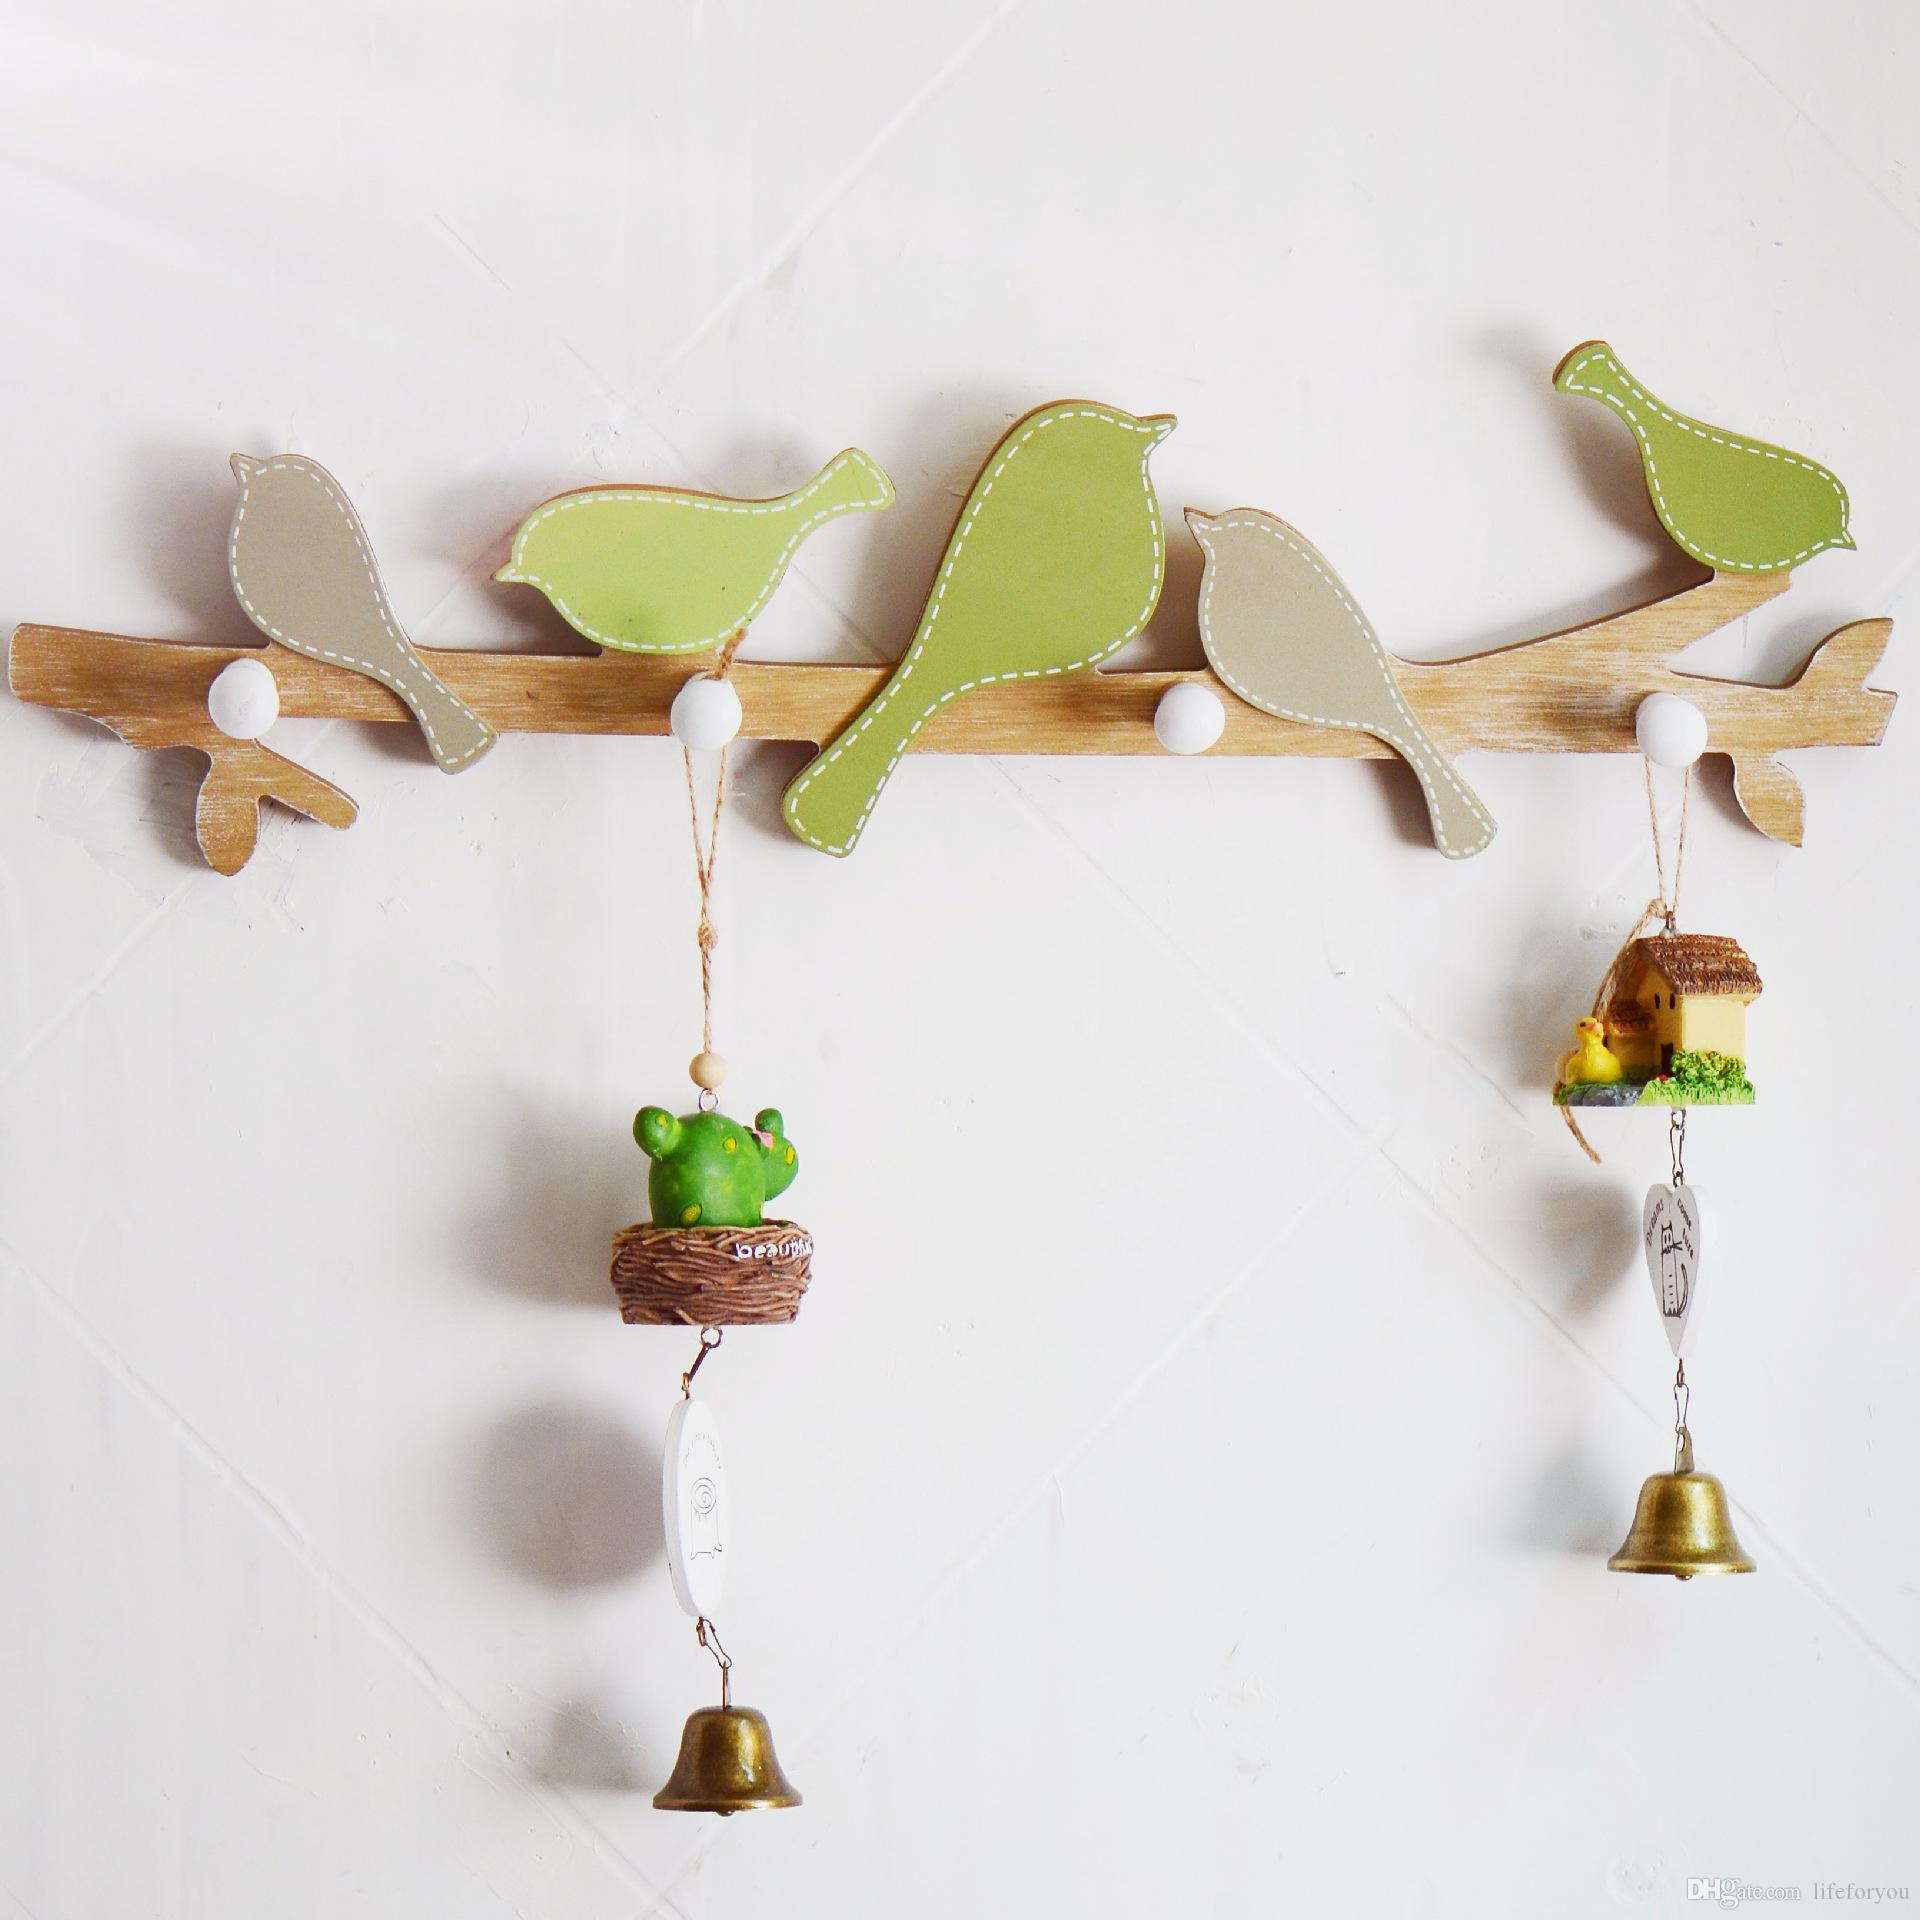 2018 wooden clothes hanger hooks coat hangers wooden hangers birds 2018 wooden clothes hanger hooks coat hangers wooden hangers birds wall hanger hooks wall decoration craft gifts 189 x 511 inch from lifeforyou amipublicfo Choice Image